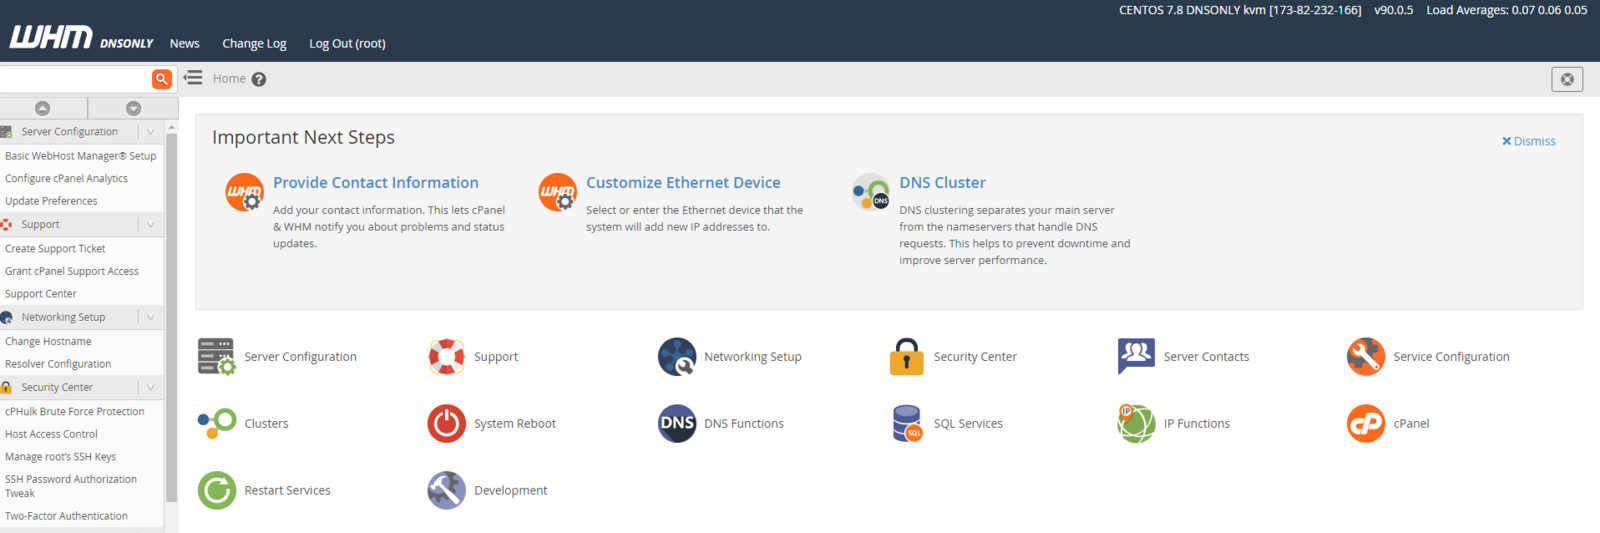 cPanel DNSONLY Management Screen